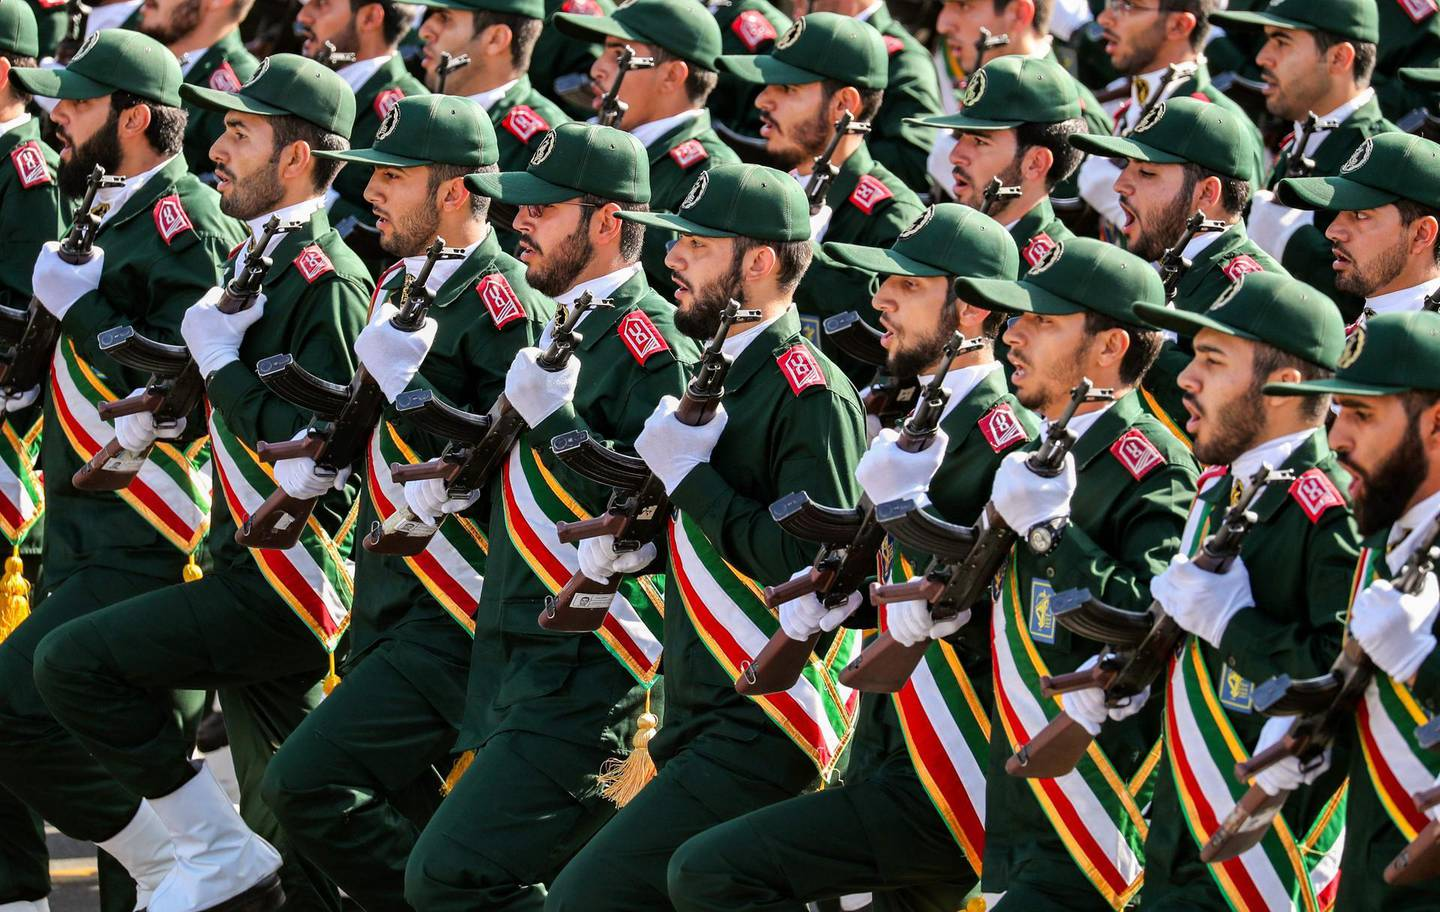 """(FILES) In this file photo taken on September 22, 2018 shows members of Iran's Revolutionary Guards Corps (IRGC) marching during the annual military parade which markins the anniversary of the outbreak of the devastating 1980-1988 war with Saddam Hussein's Iraq, in the capital Tehran. Iran's top security body called an urgent meeting on January 3, 2020 over the """"martyrdom"""" of Quds Force commander Qasem Soleimani by the United States in Baghdad, semi-official news agency ISNA reported. The United States announced earlier that it had killed the commander of the Islamic republic's Quds Force, Qasem Soleimani, in a strike on Baghdad's international airport early on Friday. / AFP / afp / STRINGER"""